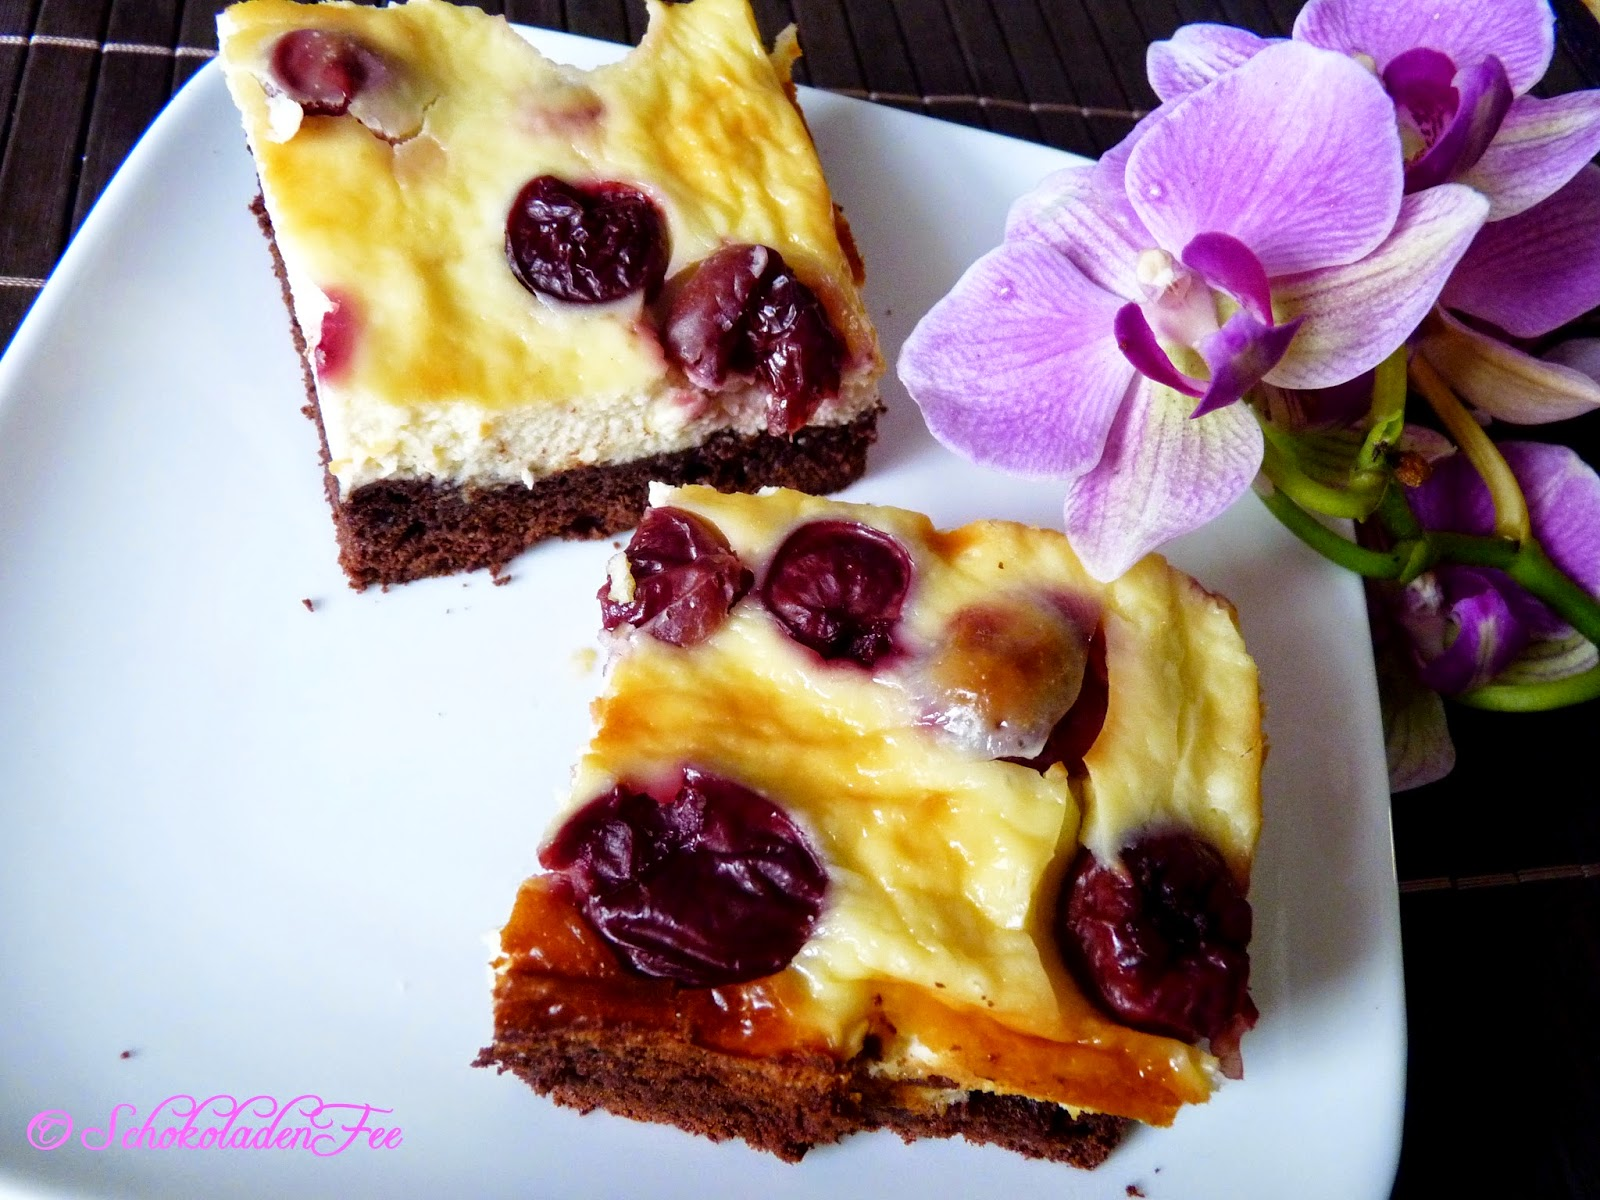 http://bakingavenue.wordpress.com/2014/08/01/cherry-cheesecake-brownies-ein-gastbeitrag-only-german/